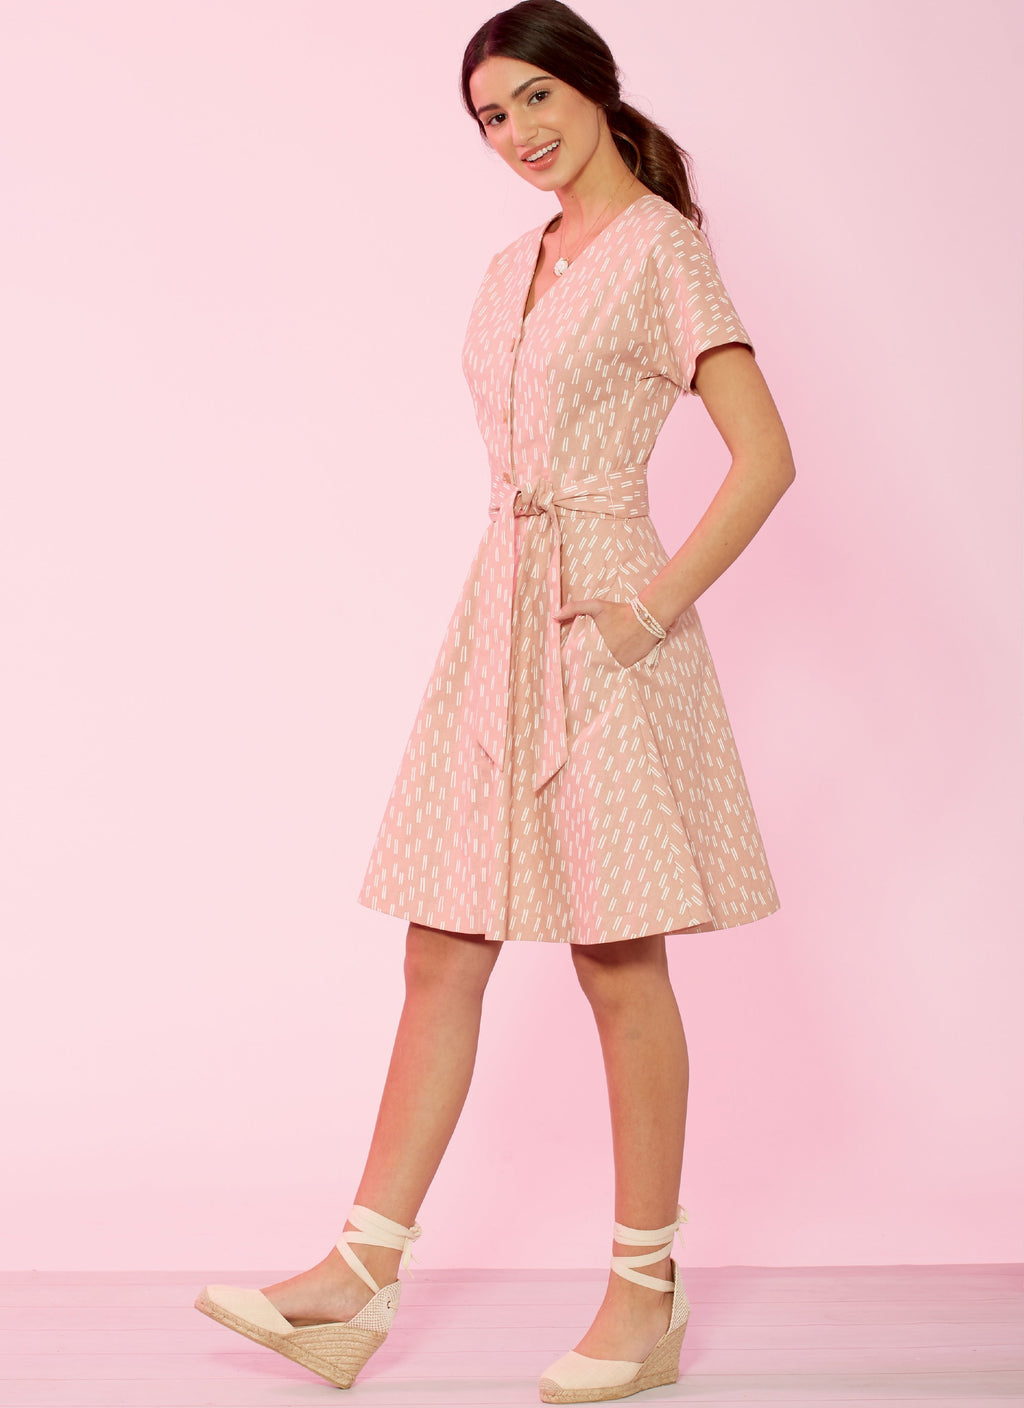 McCall's 7920 Misses'/Miss Petite Dresses and Belt